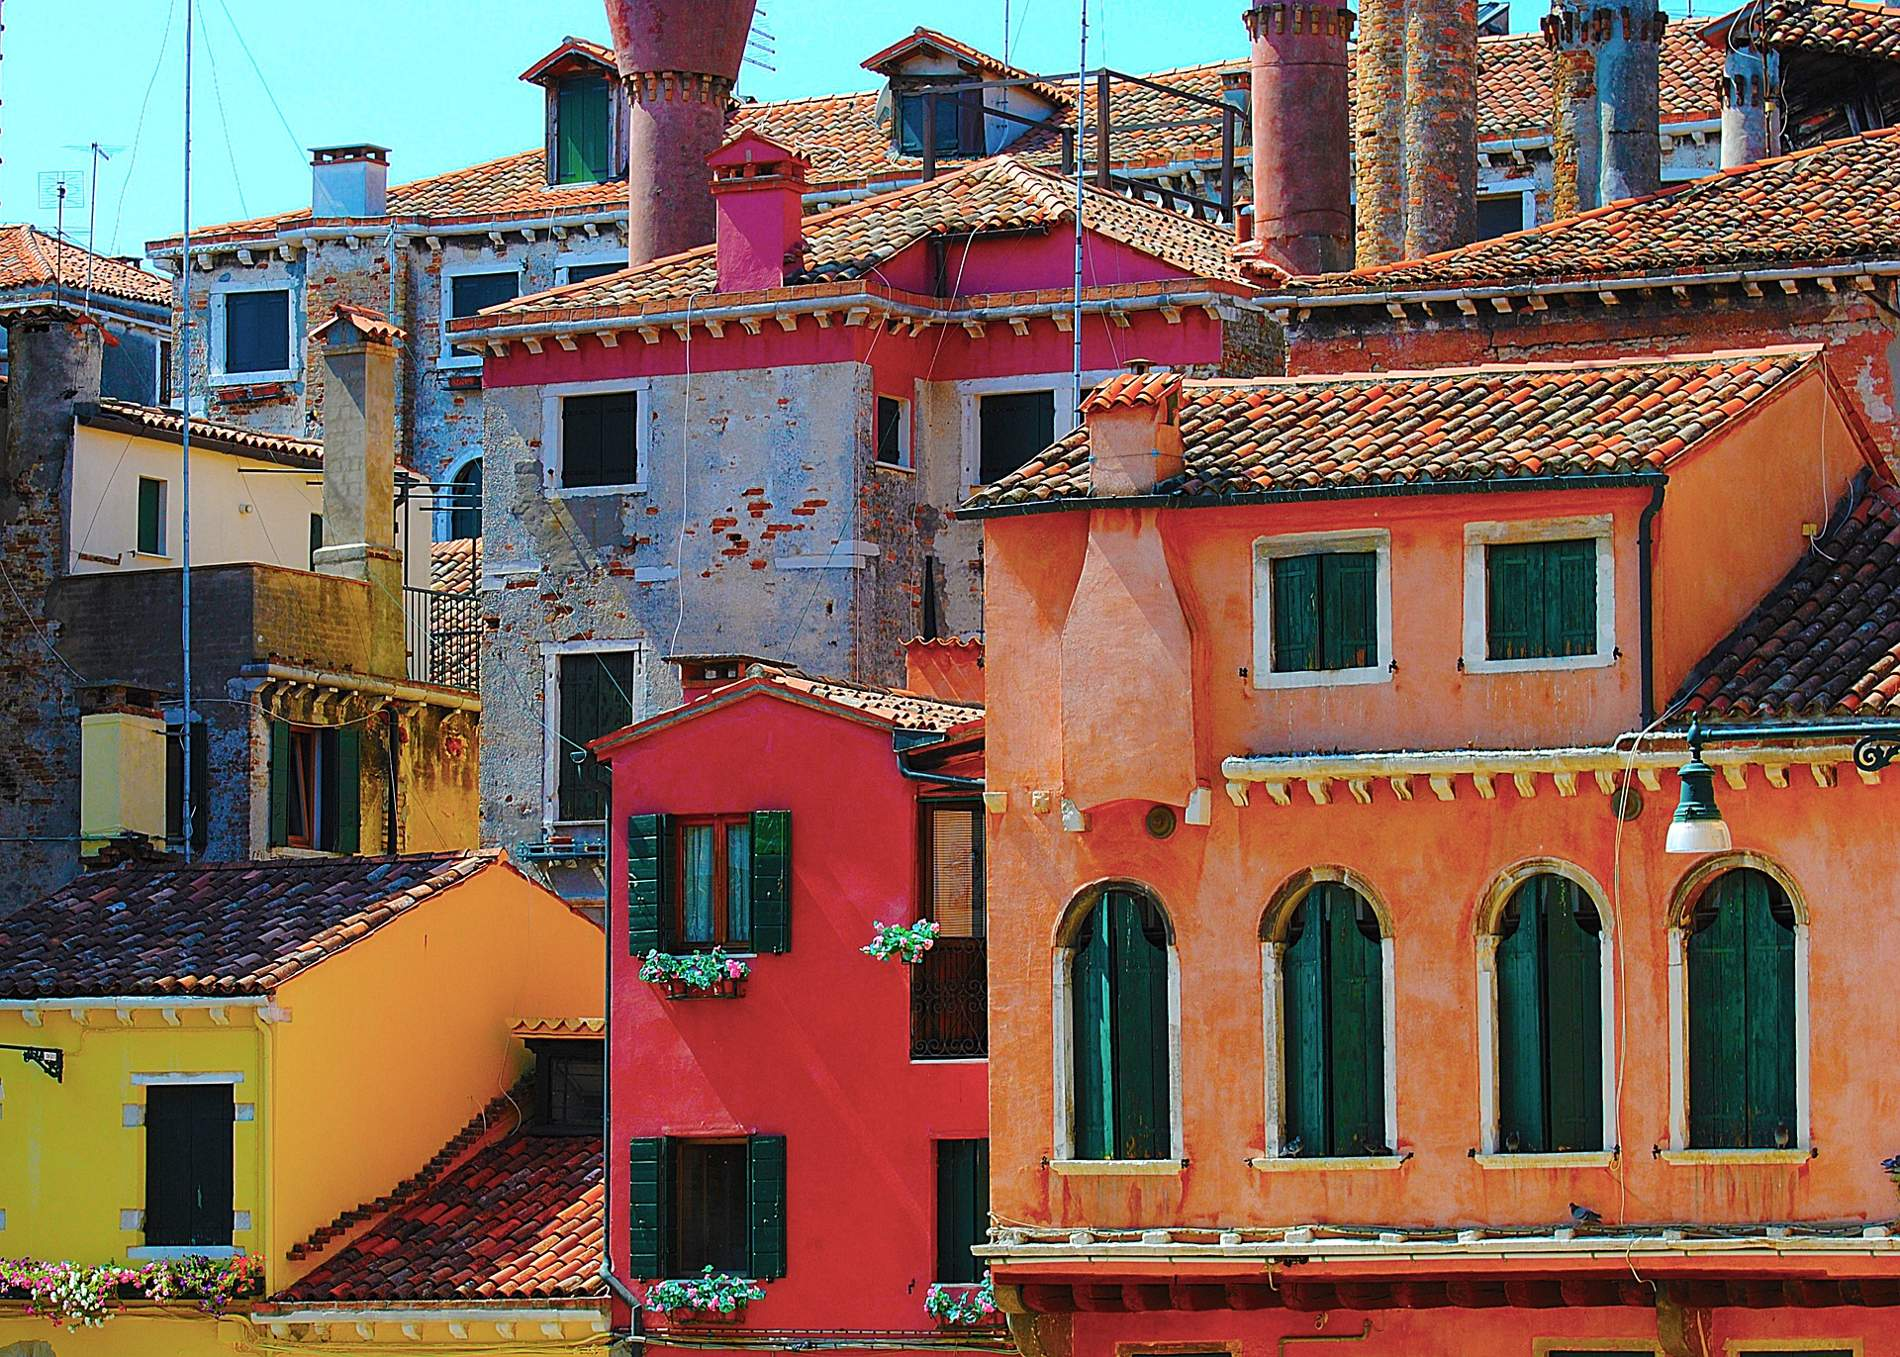 Colorful house in mesmerizing Venice. Source: Pixabay